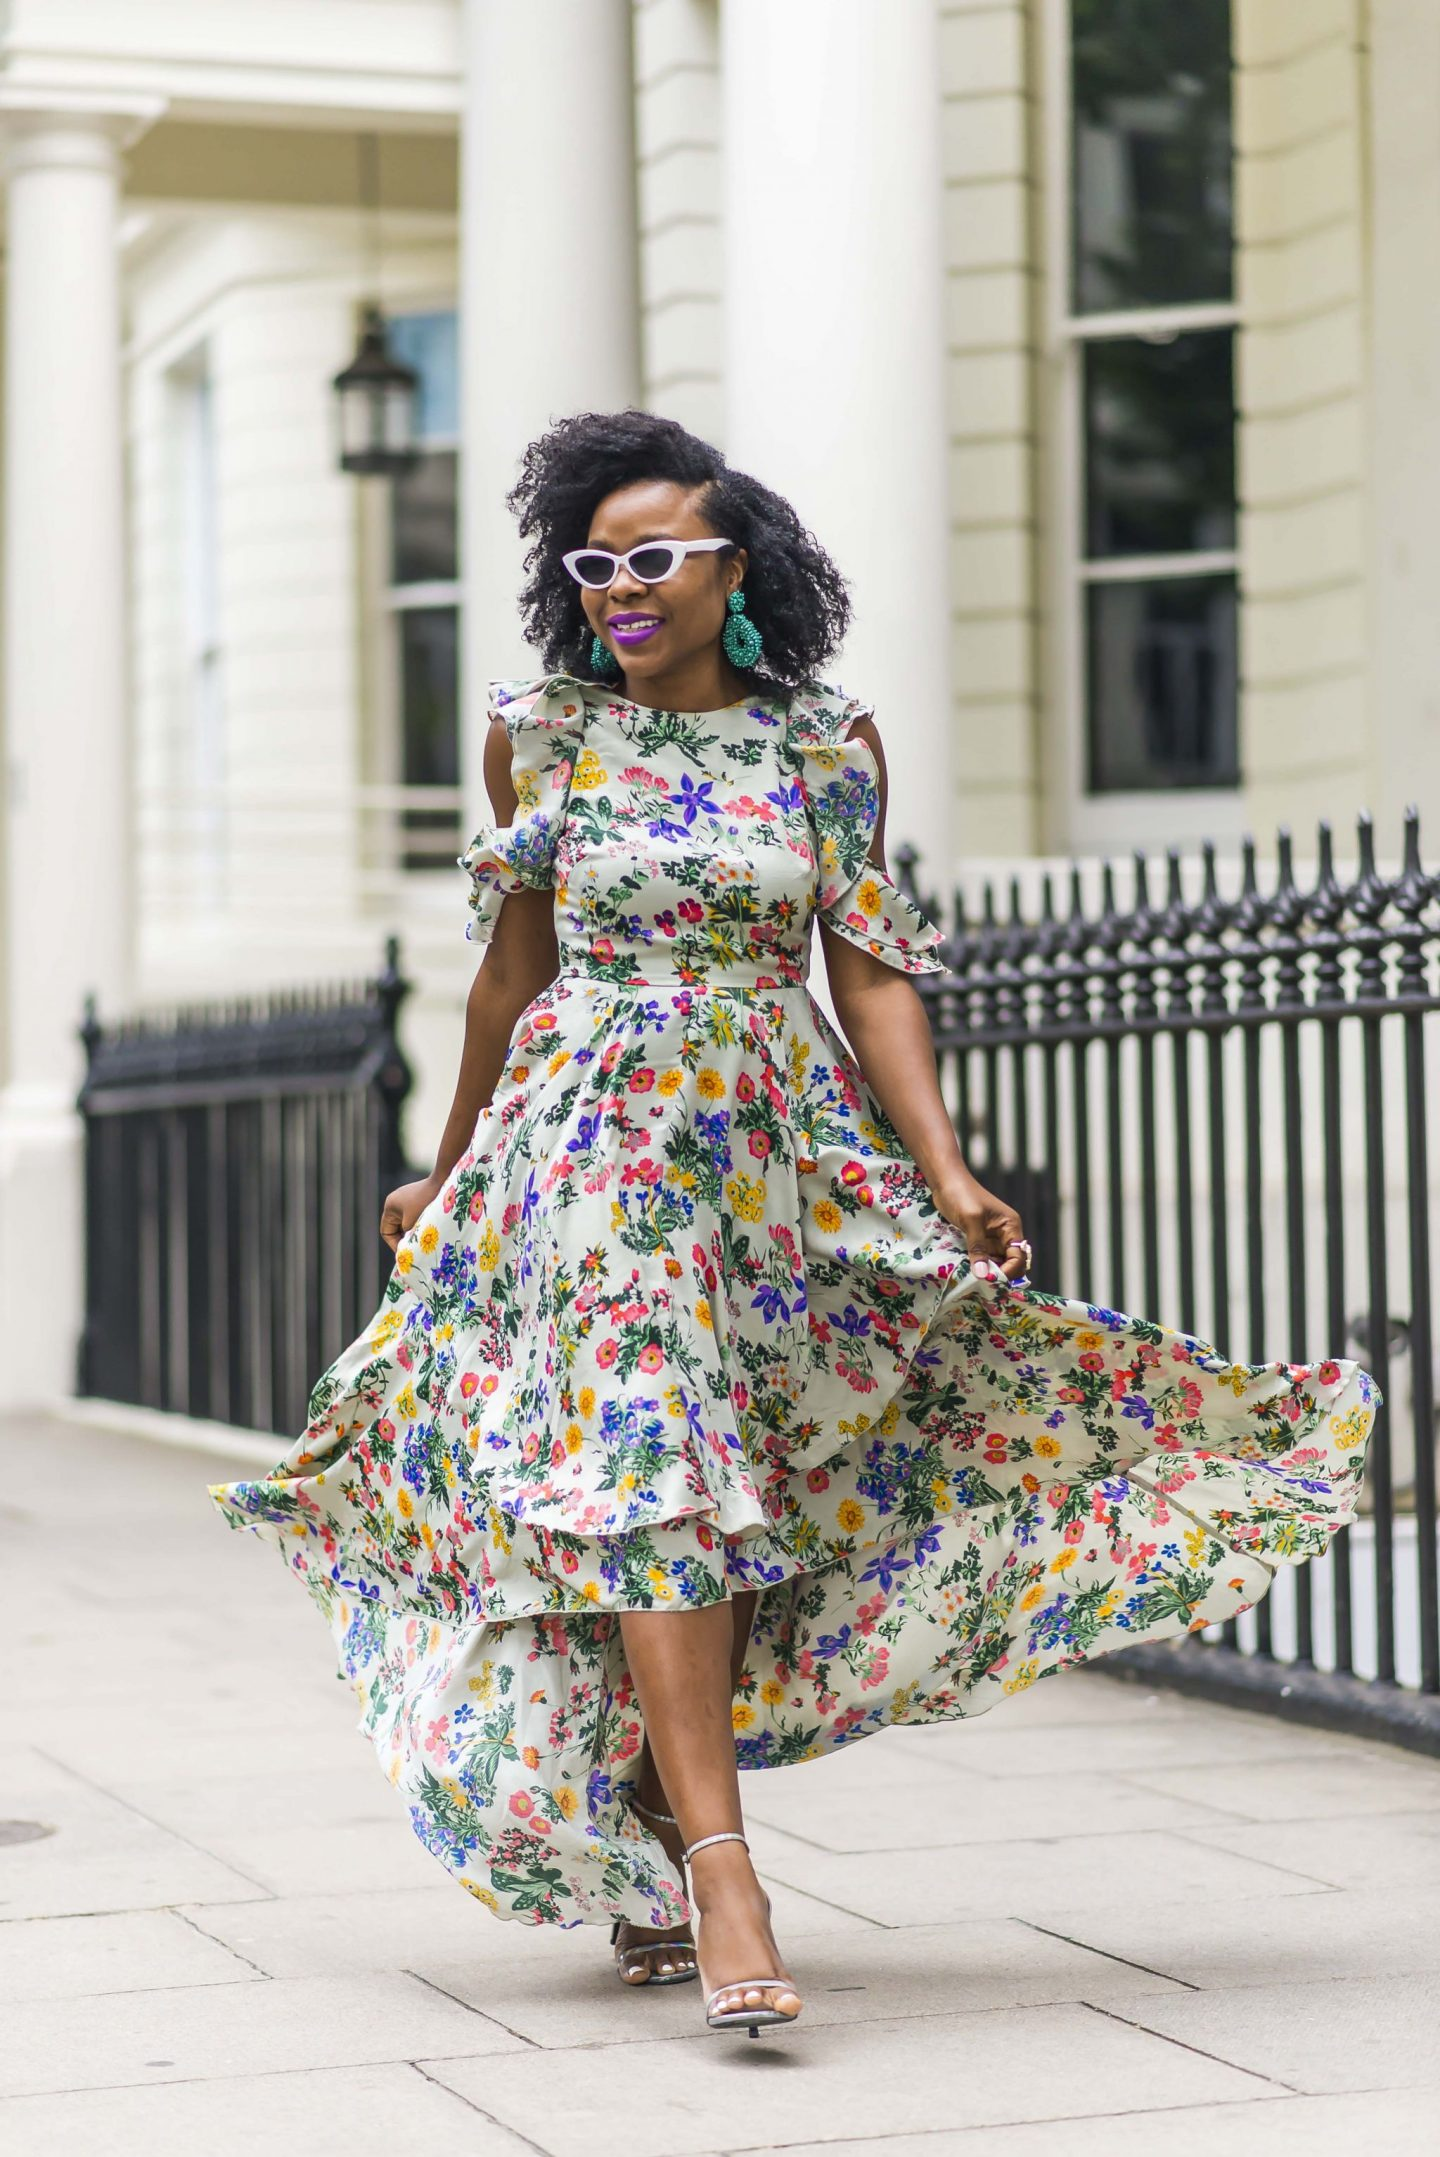 Summer Fashion: Floral Maxi Dress